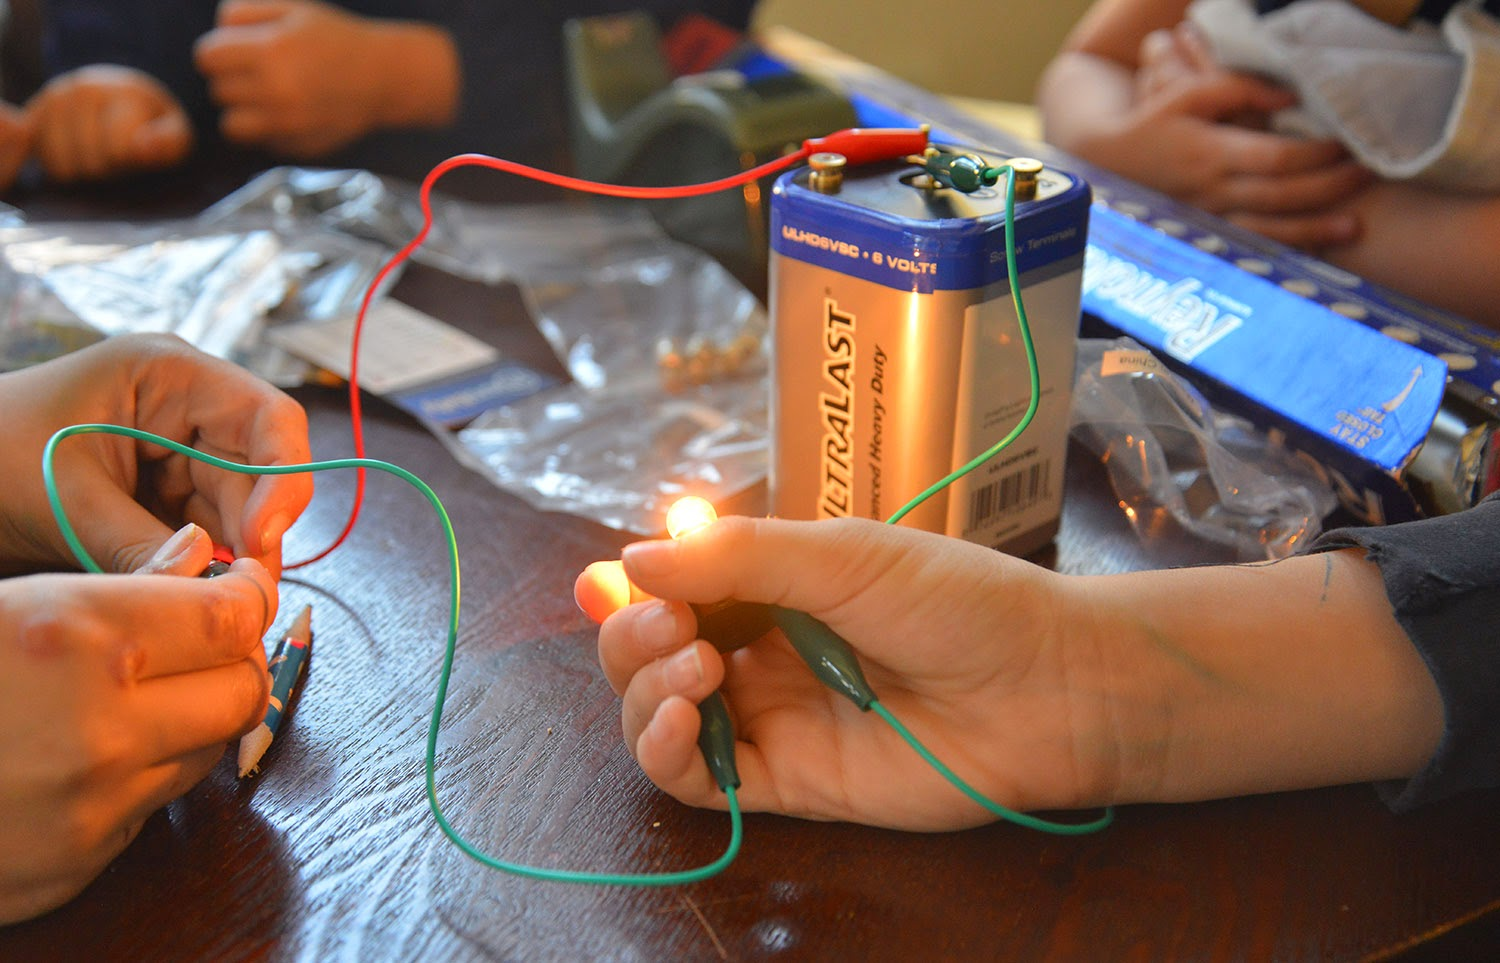 Parallel And Series Circuit With Lightbulbs Battery A School Of Fish Simple Foil Circuits Next We Set Up Batteries Bulbs Alligator Clips Tried Various Configurations Learned About